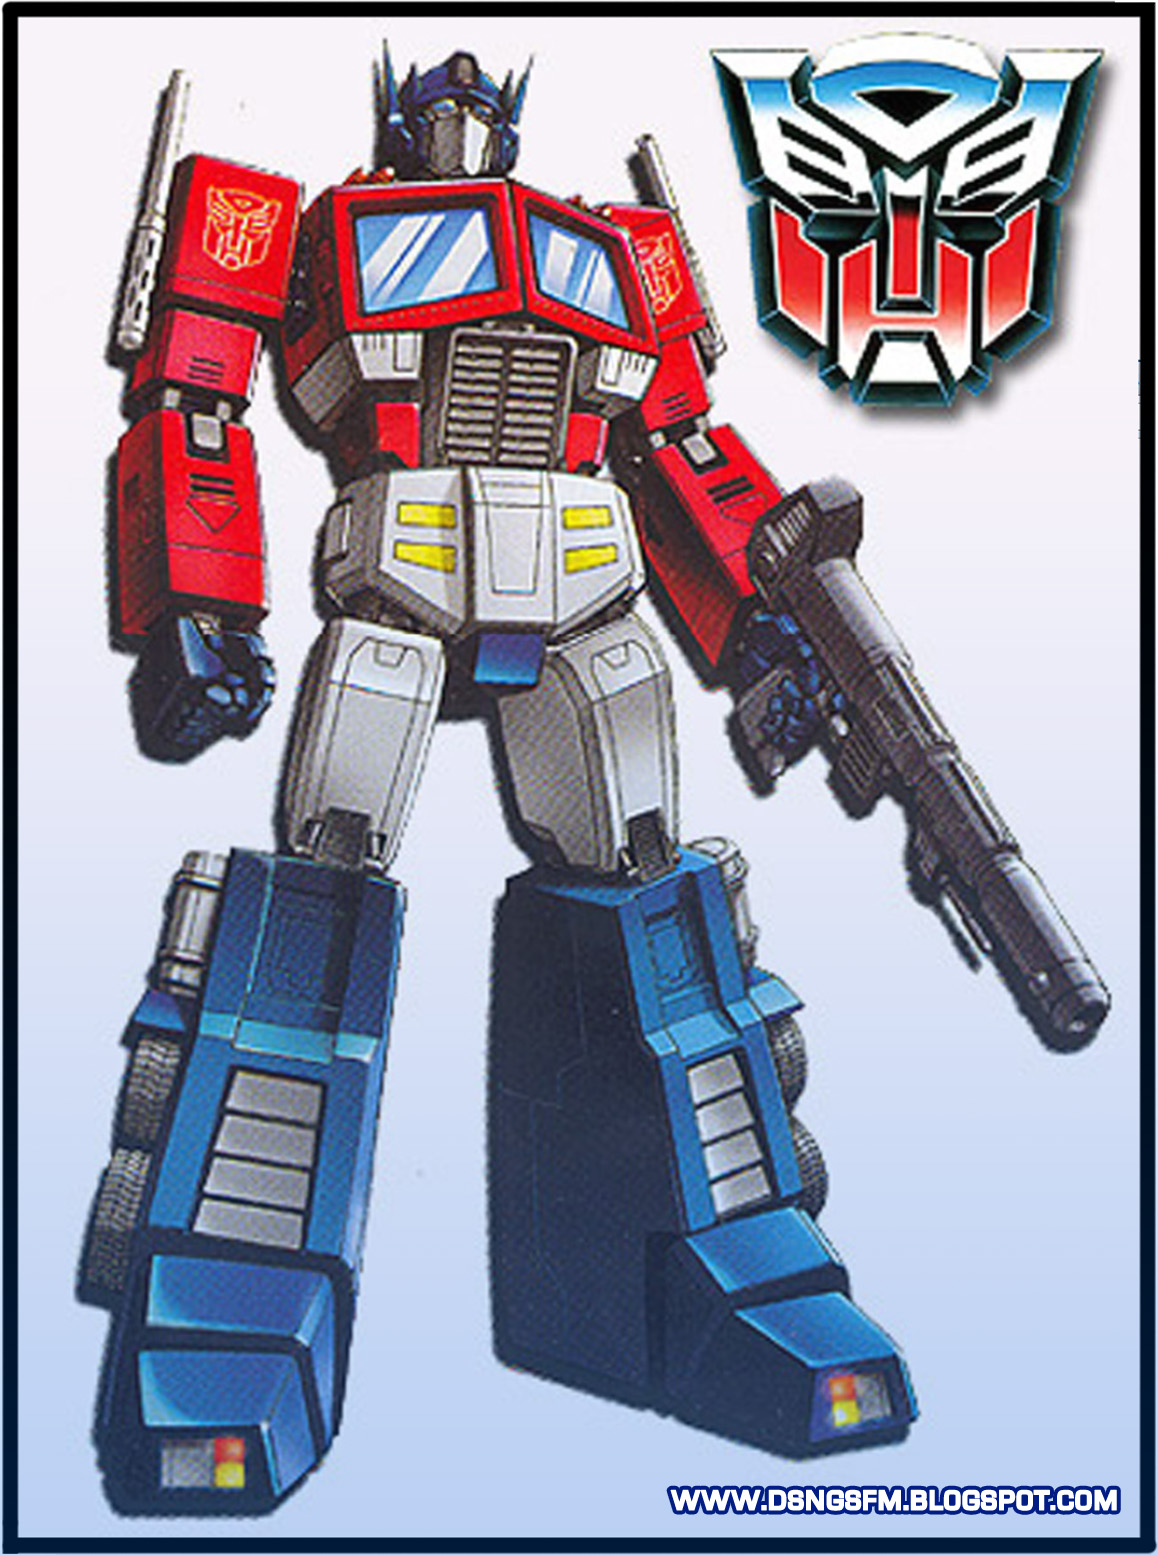 Optimus prime g1 generation 1 and compare it to the rotf movie